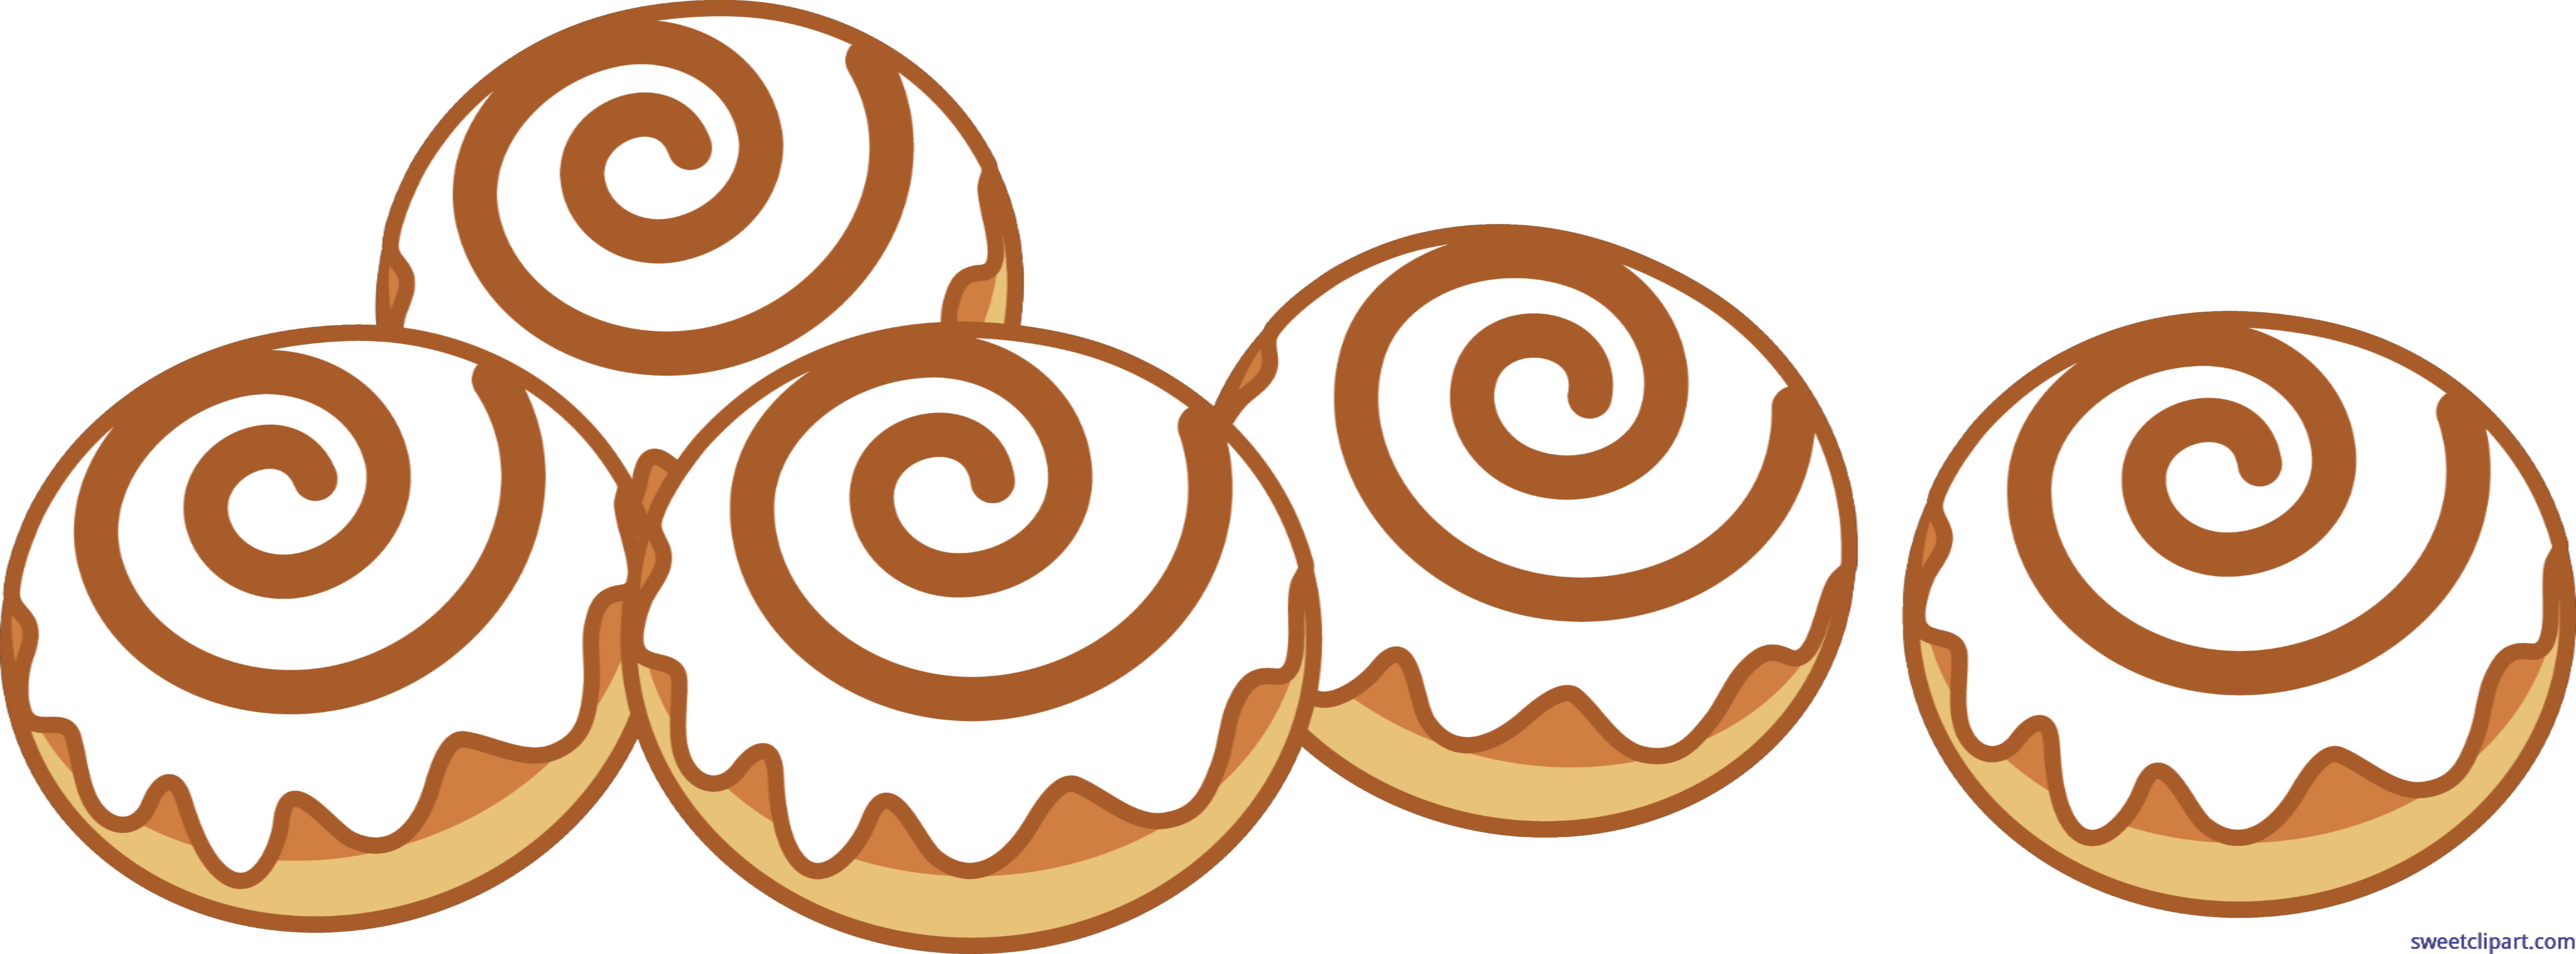 Cinnamon Rolls Set 5 Clip Art.